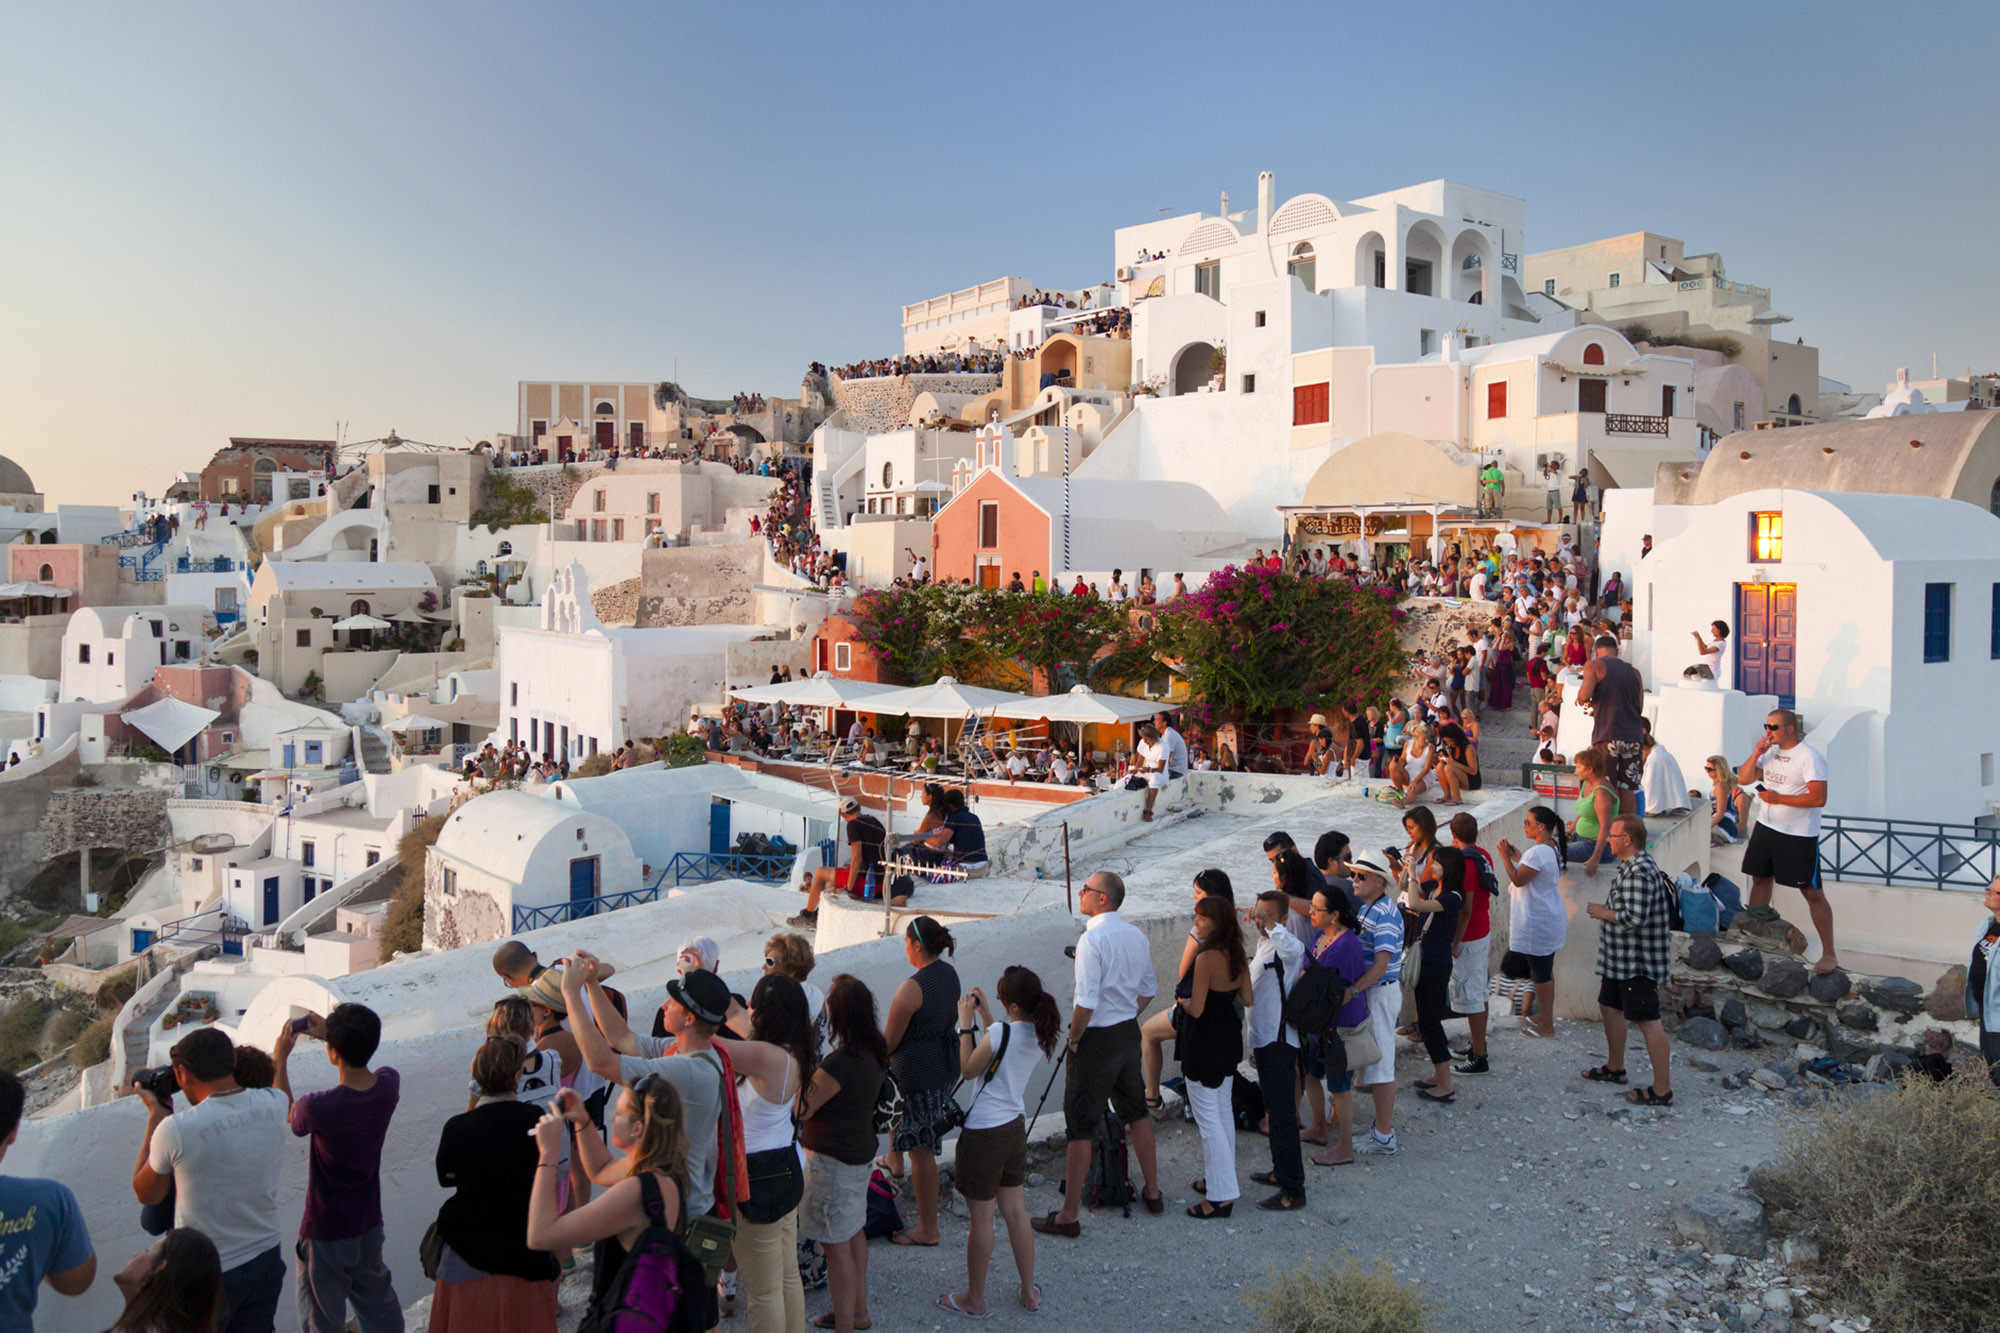 Greece records highest number of tourist arrivals across Europe in past decade